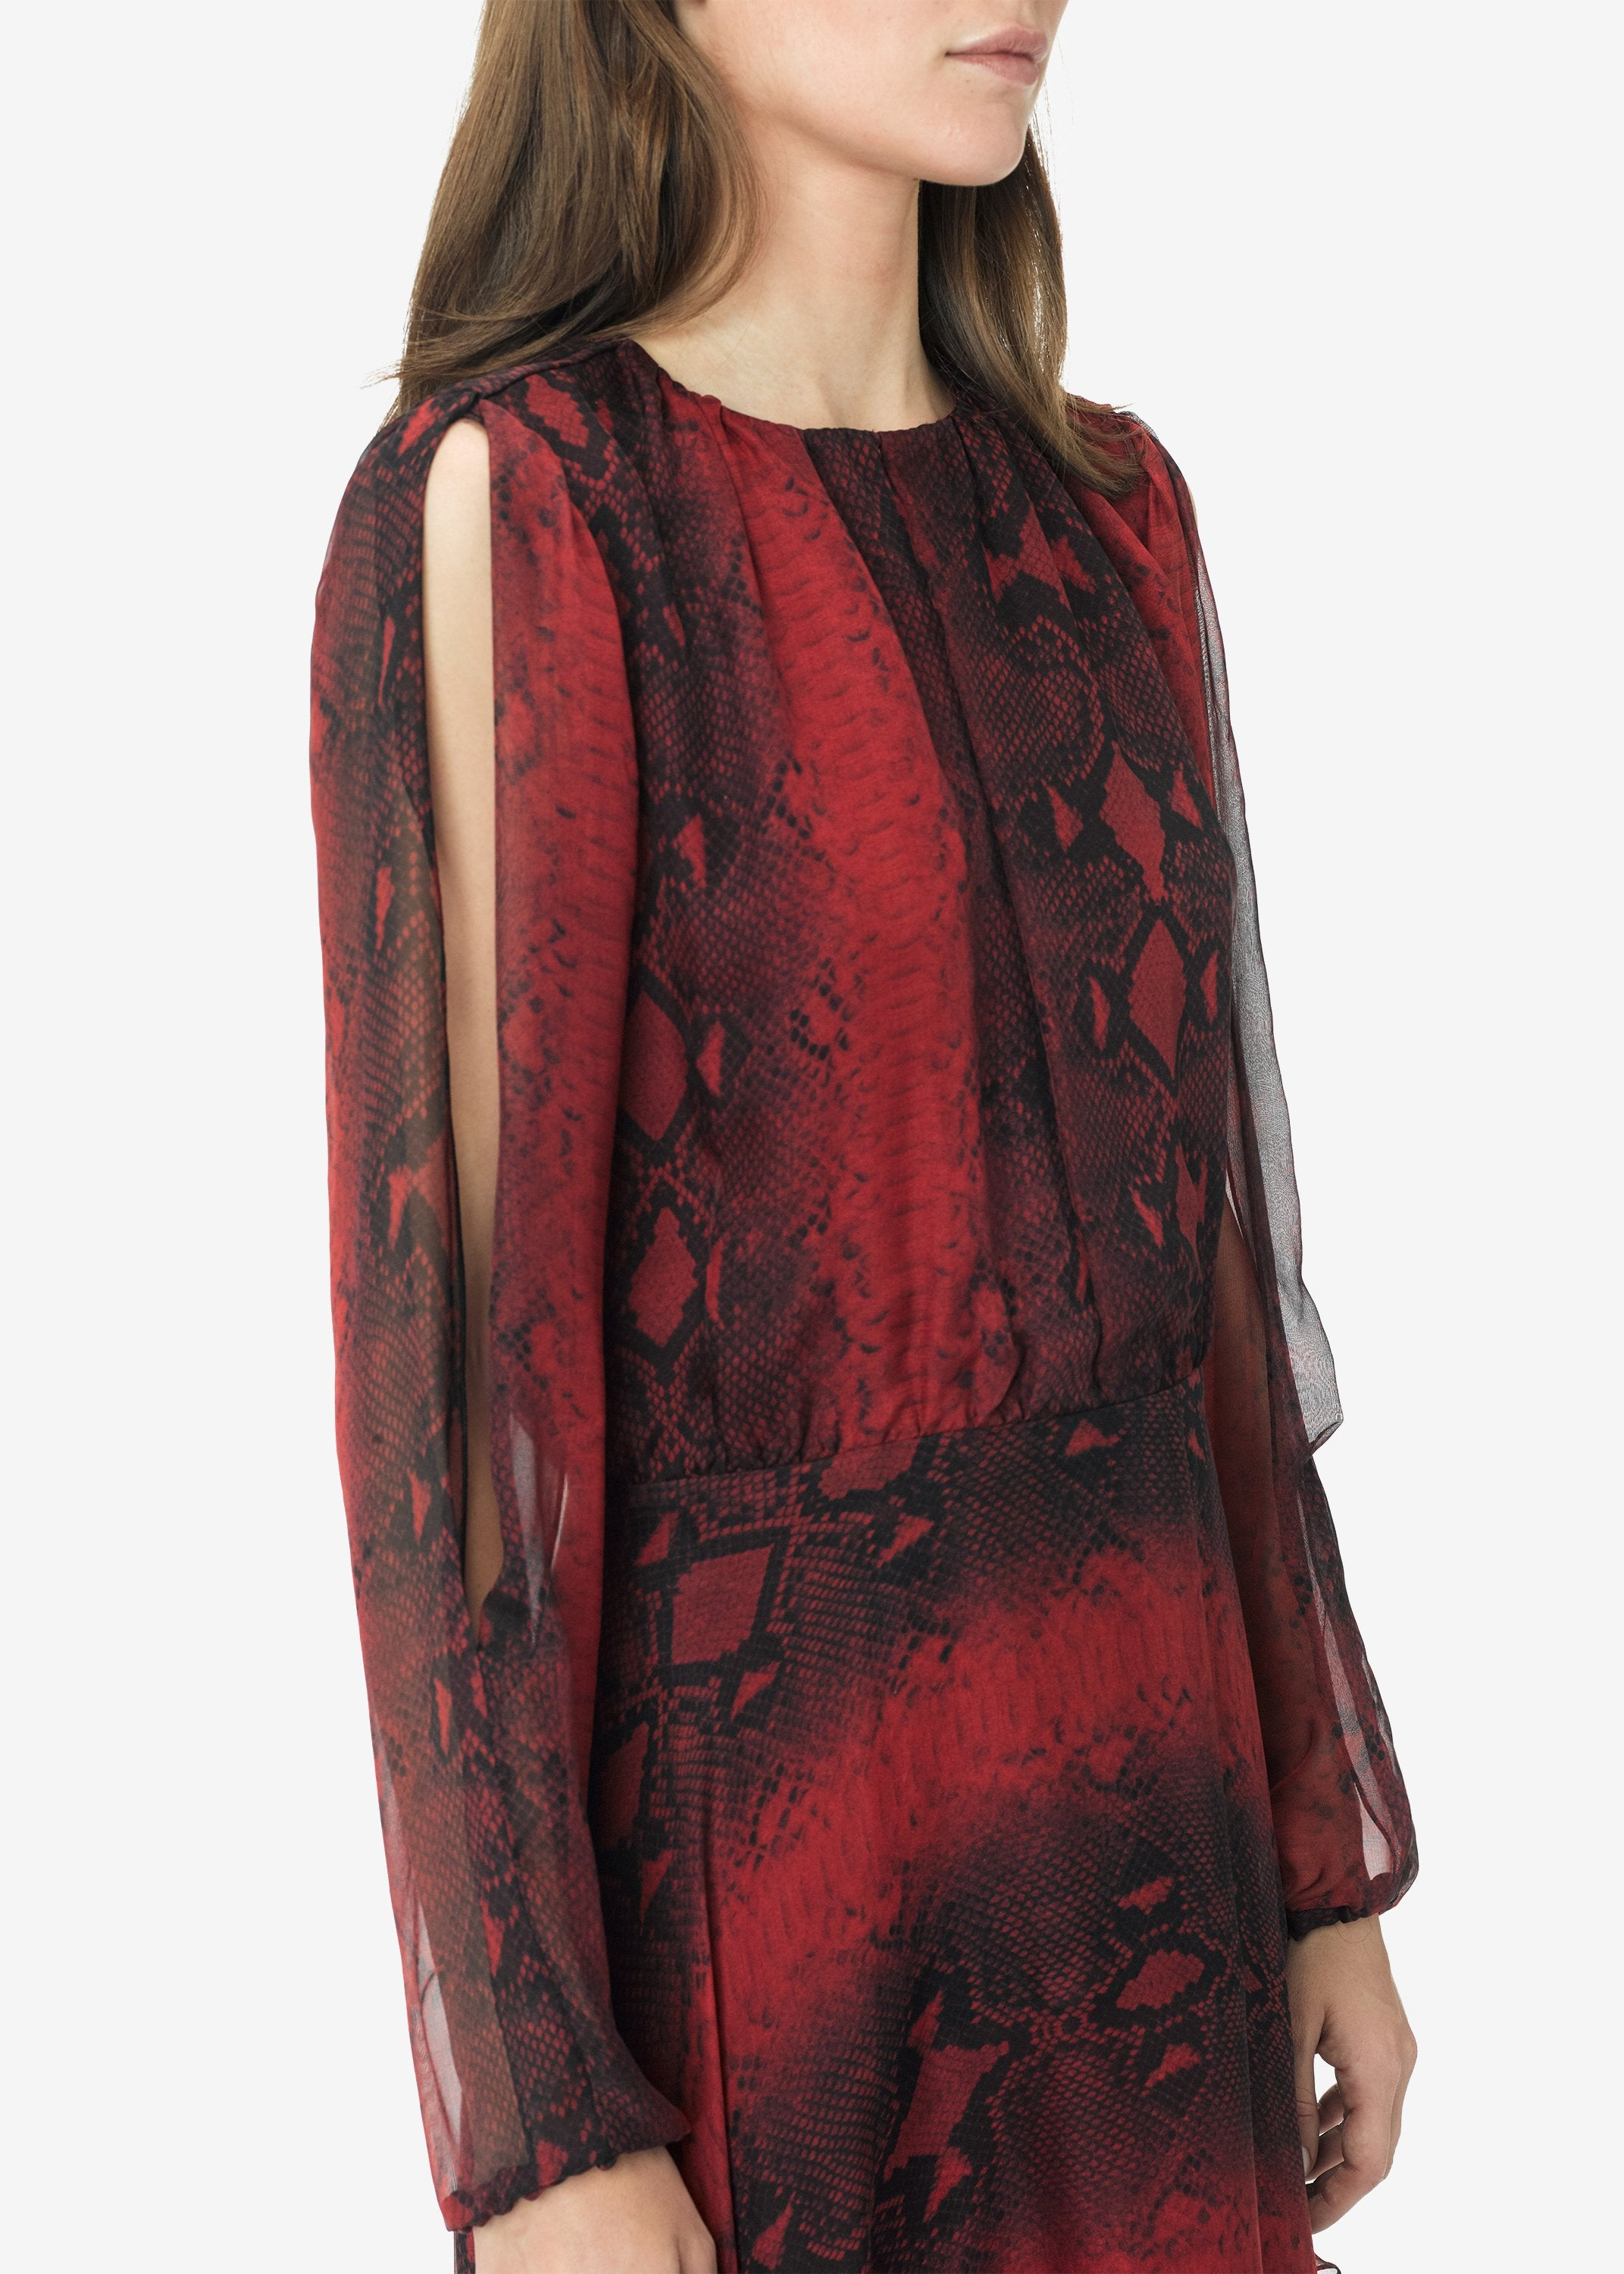 printed-python-assymetric-long-sleeve-dress-burgundy-image-3